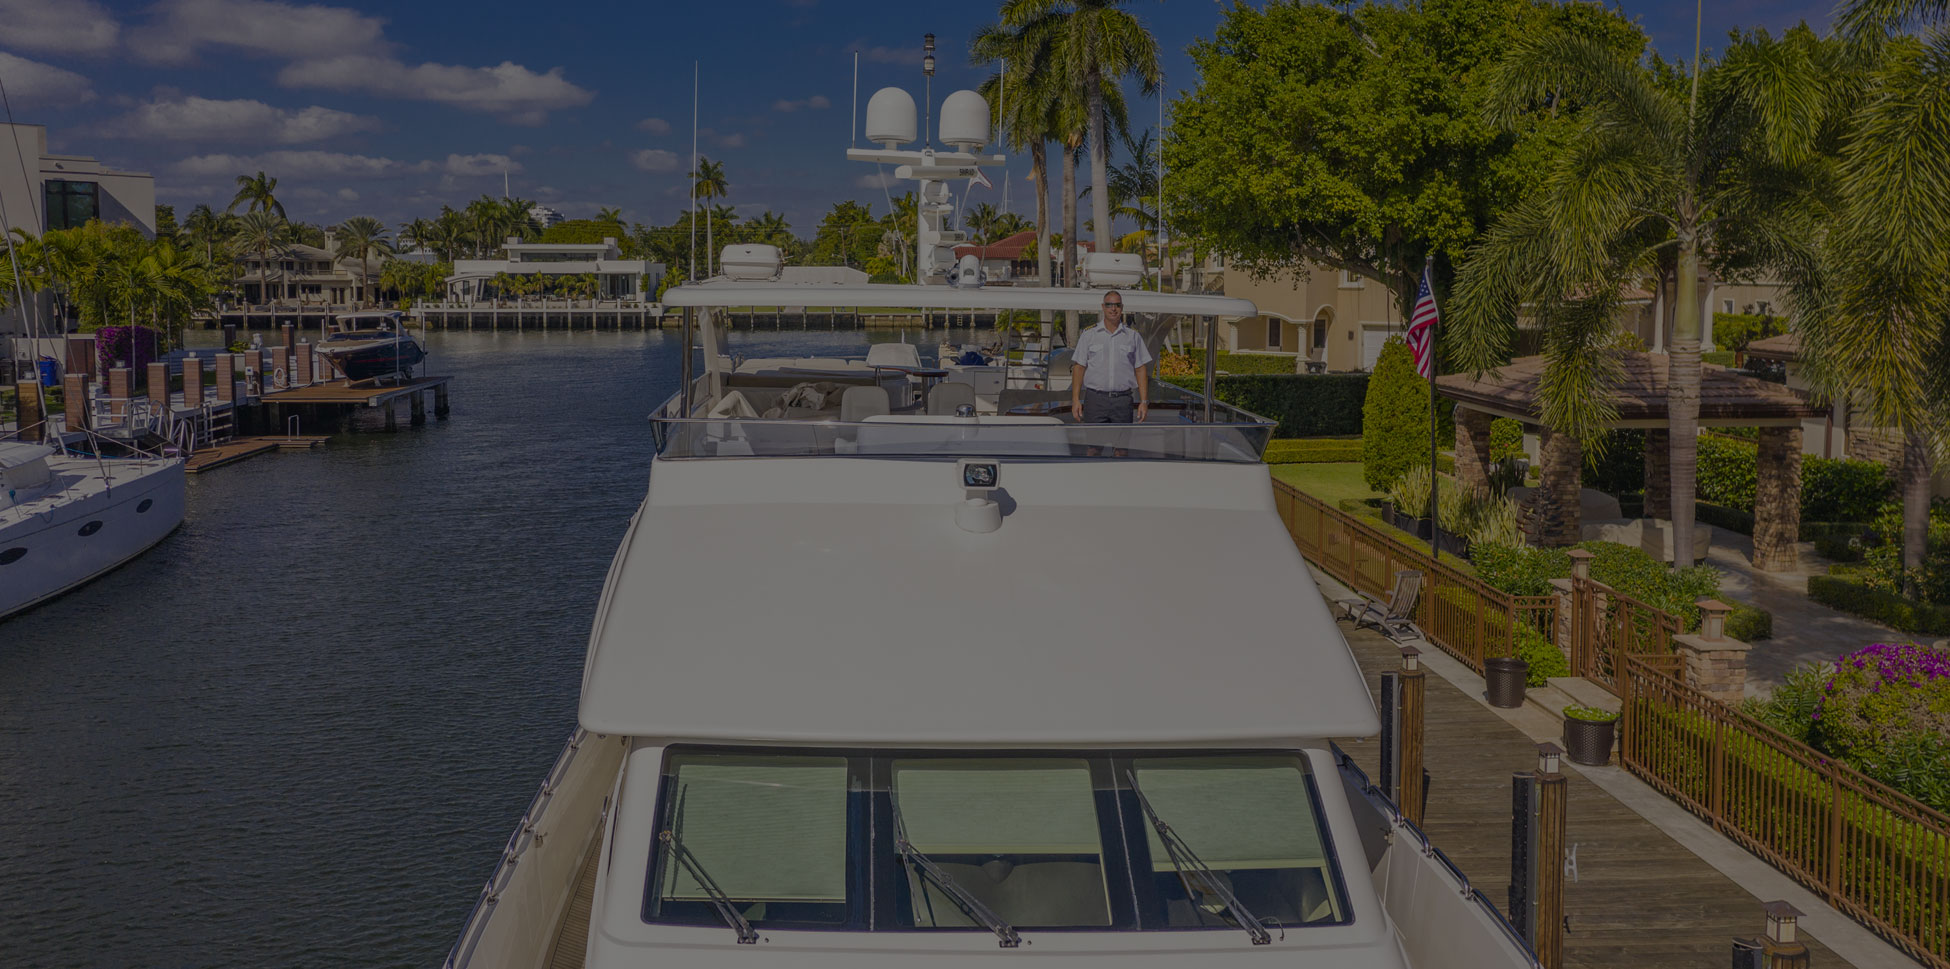 Real Estate Captain South Florida Luxury Waterfront Real Estate Agent Yacht Broker